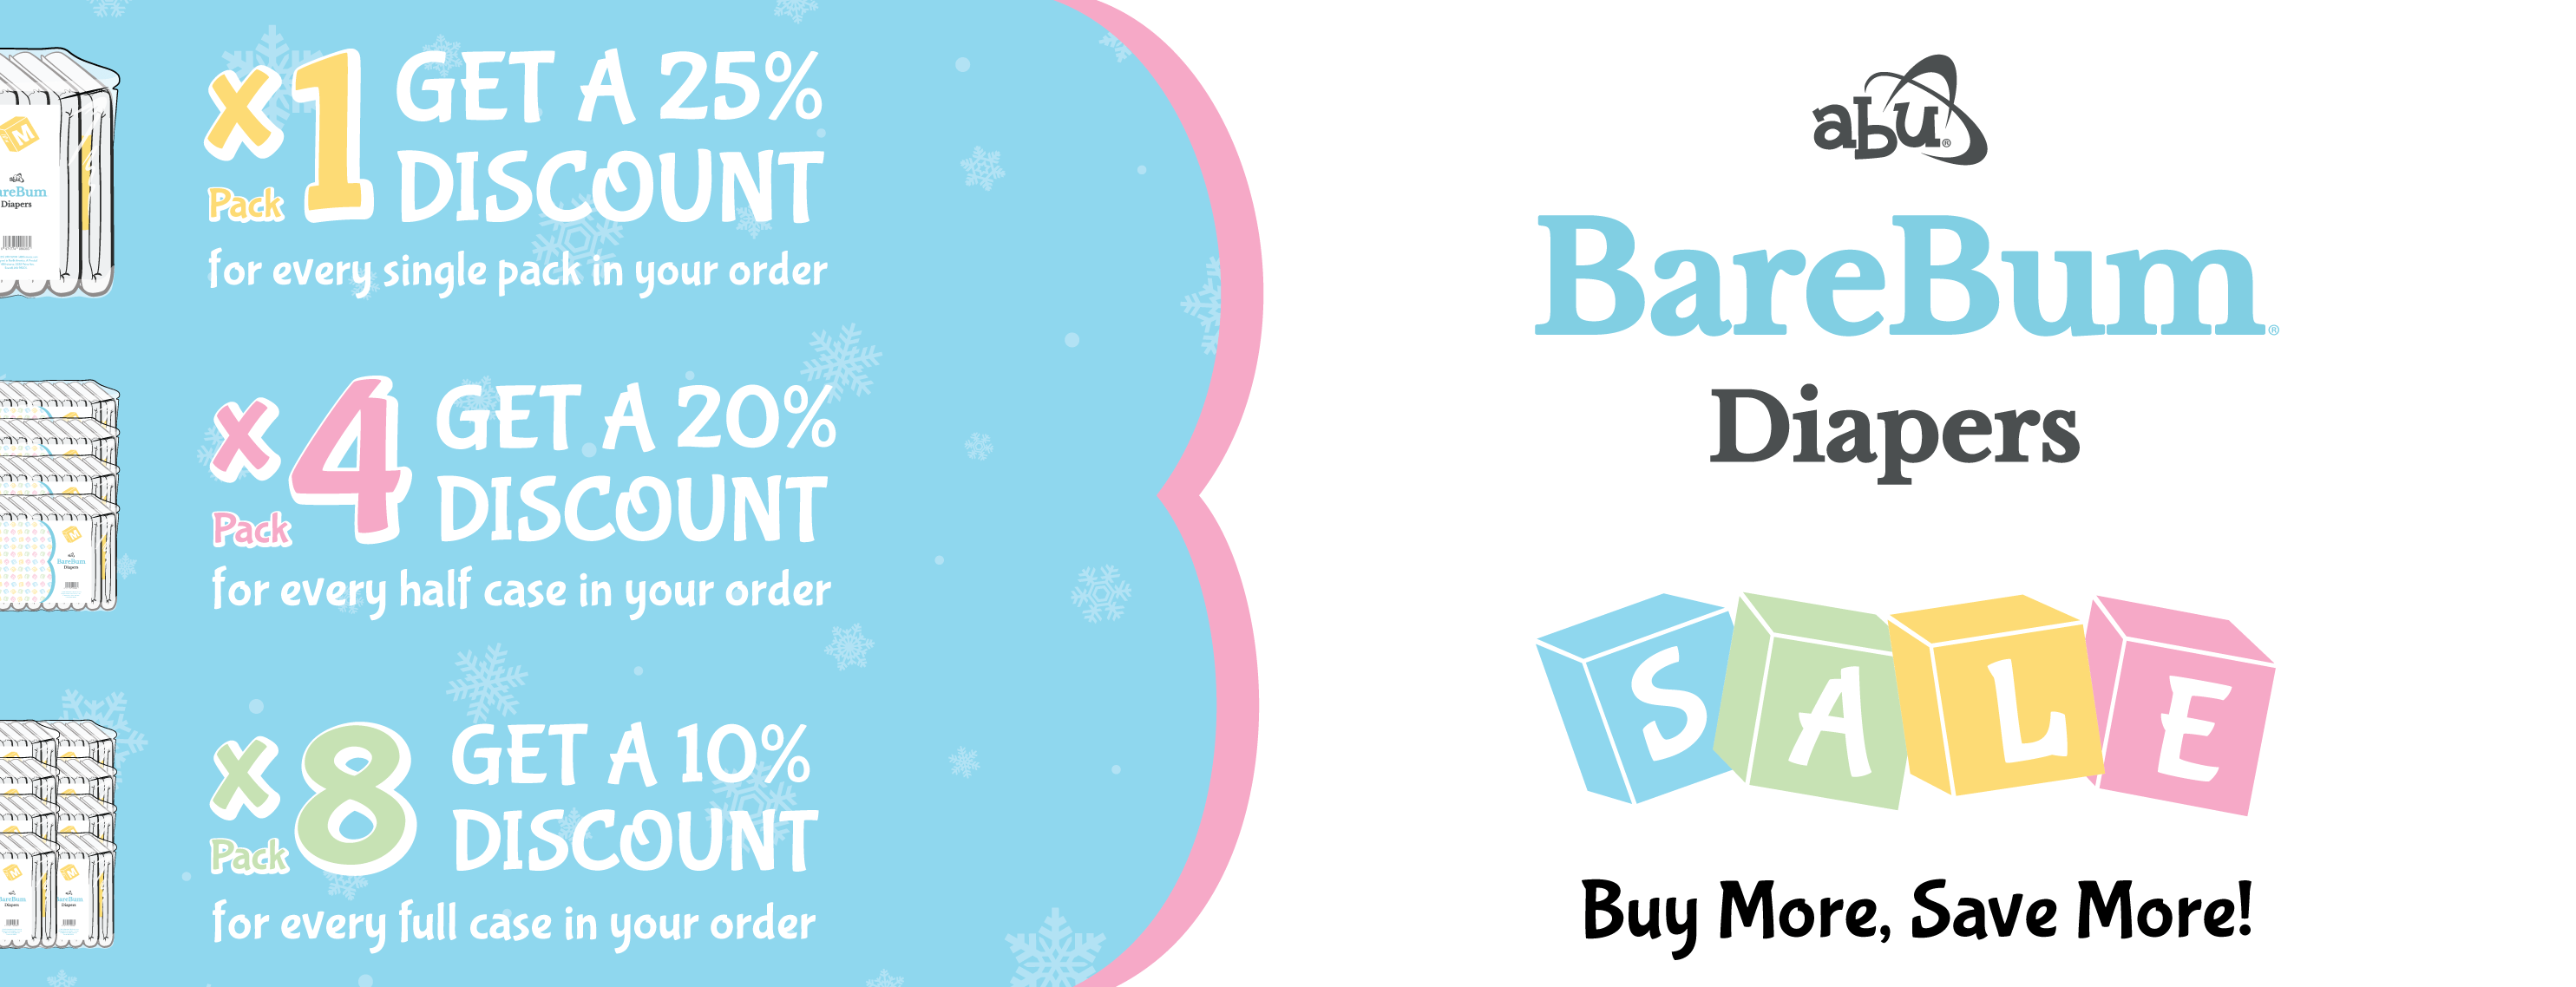 ABU BareBum Diaper Sale